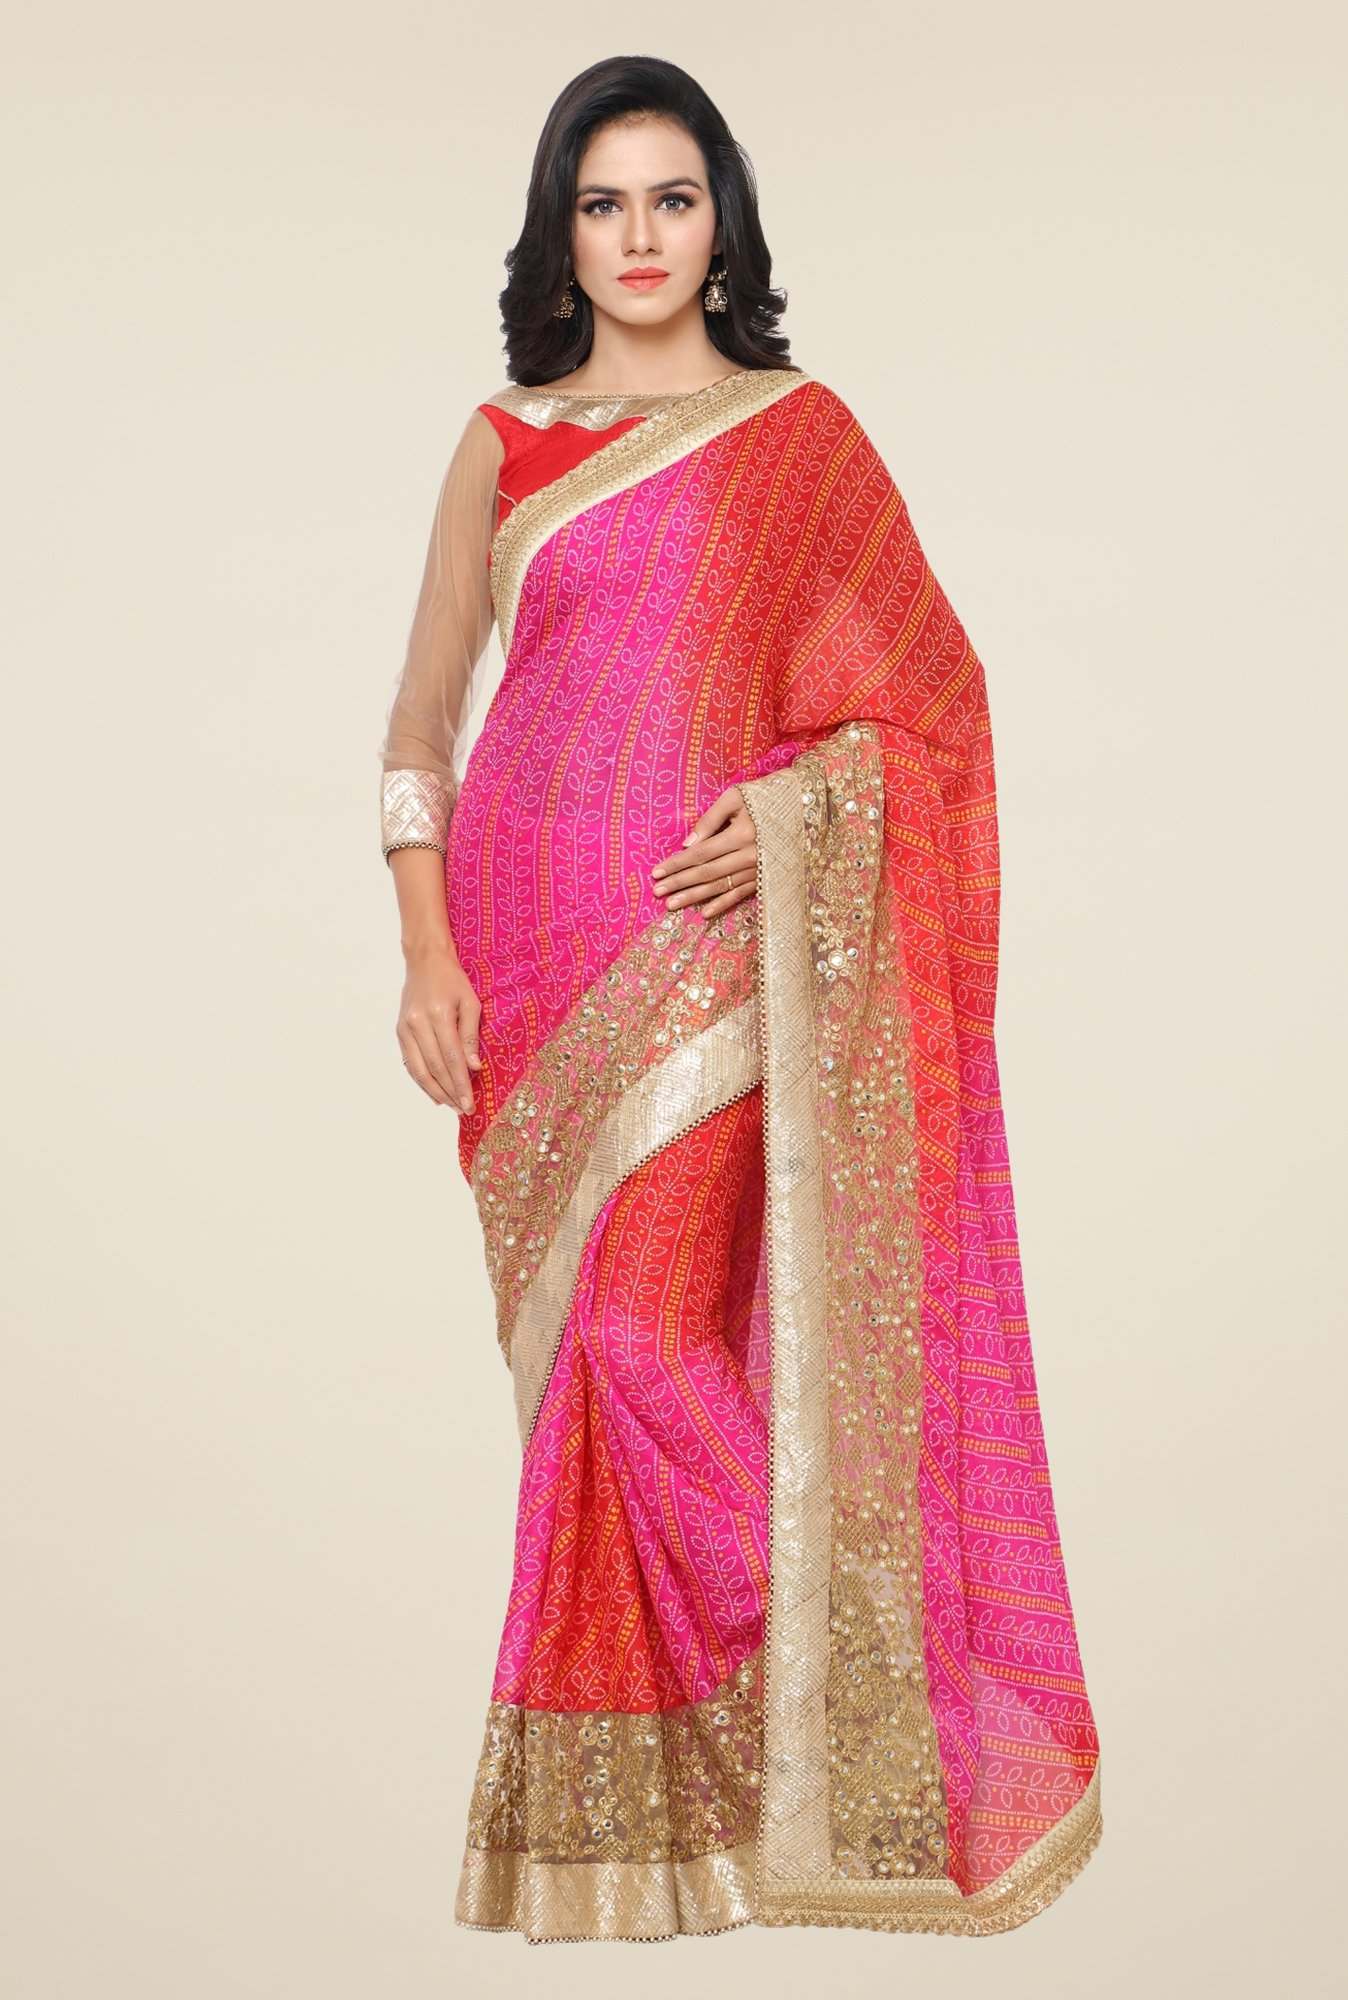 Triveni Multicolor Embellished Faux Georgette Saree